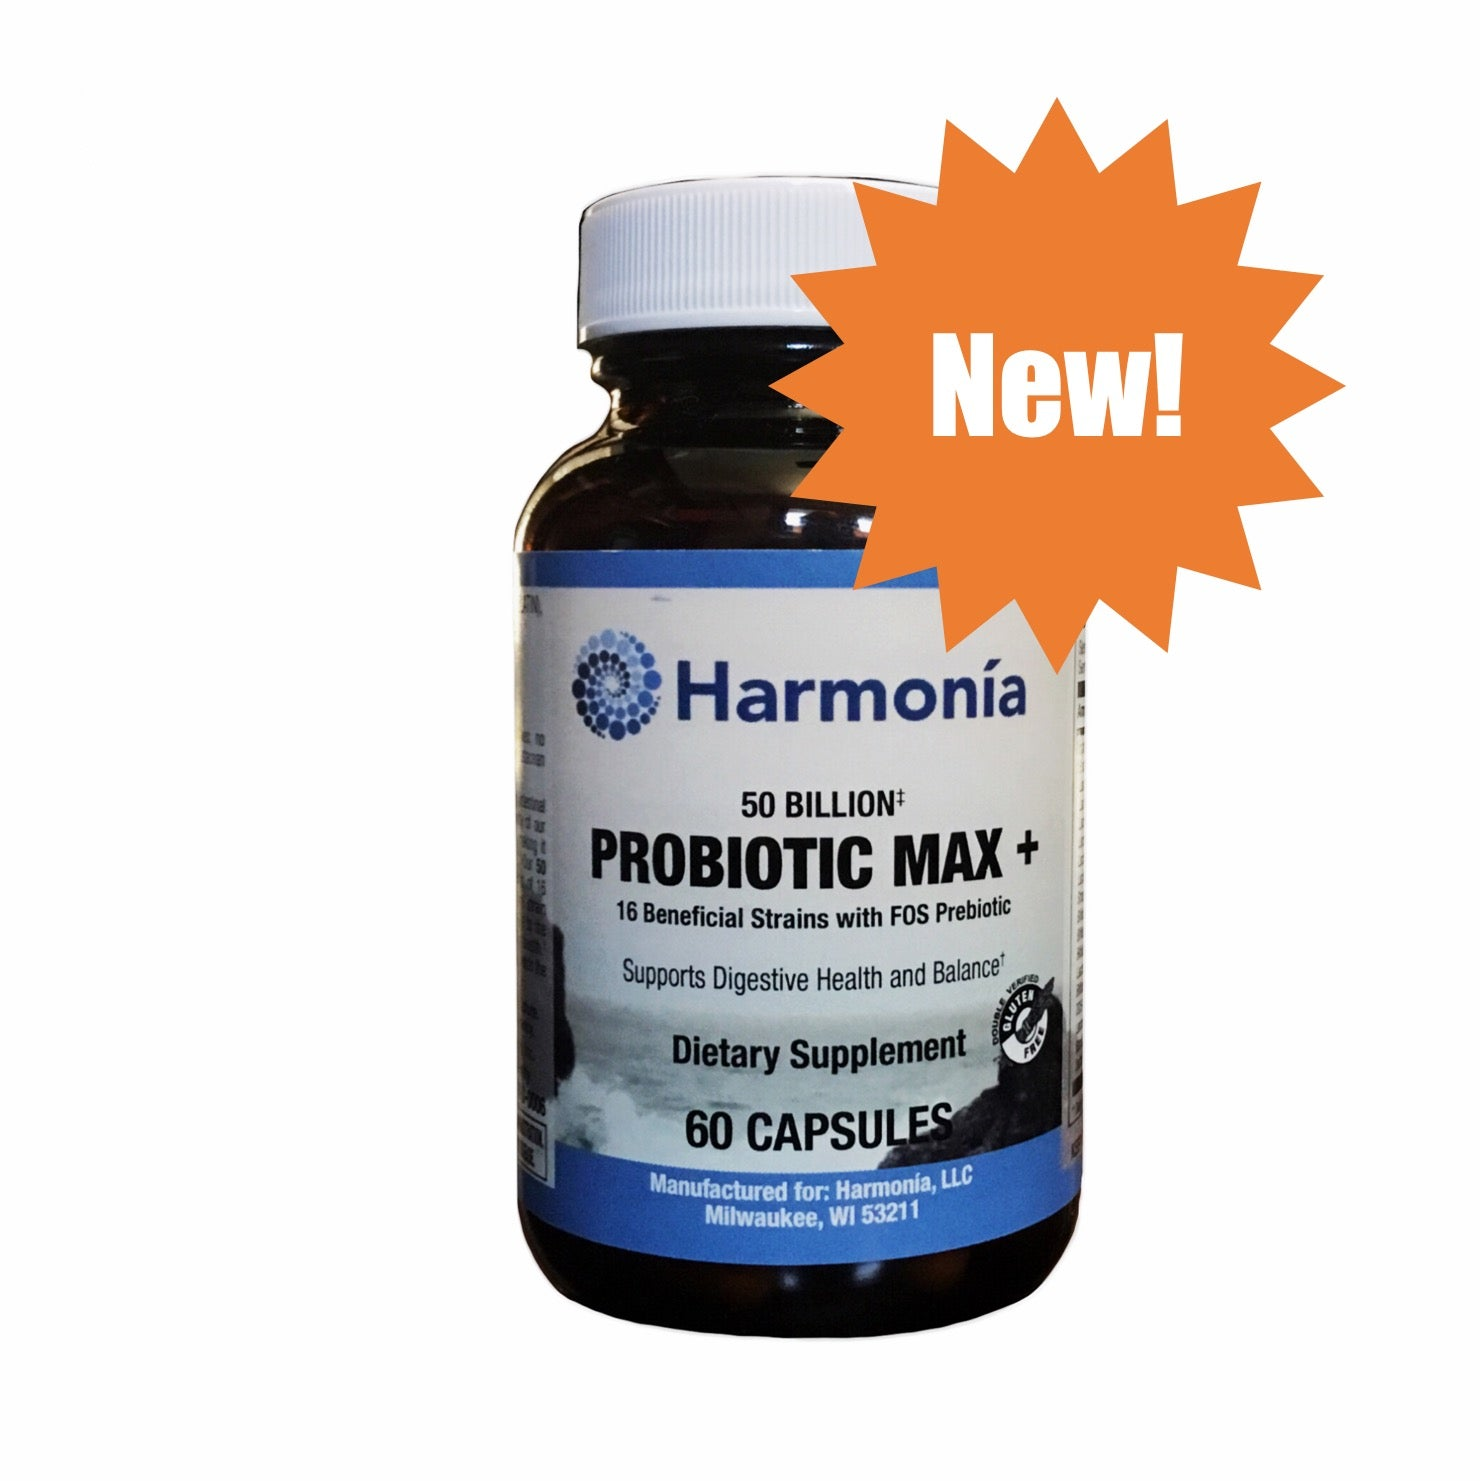 Probiotic Max + 50 Billion CFUs/g for Maximum Digestion and Immunity